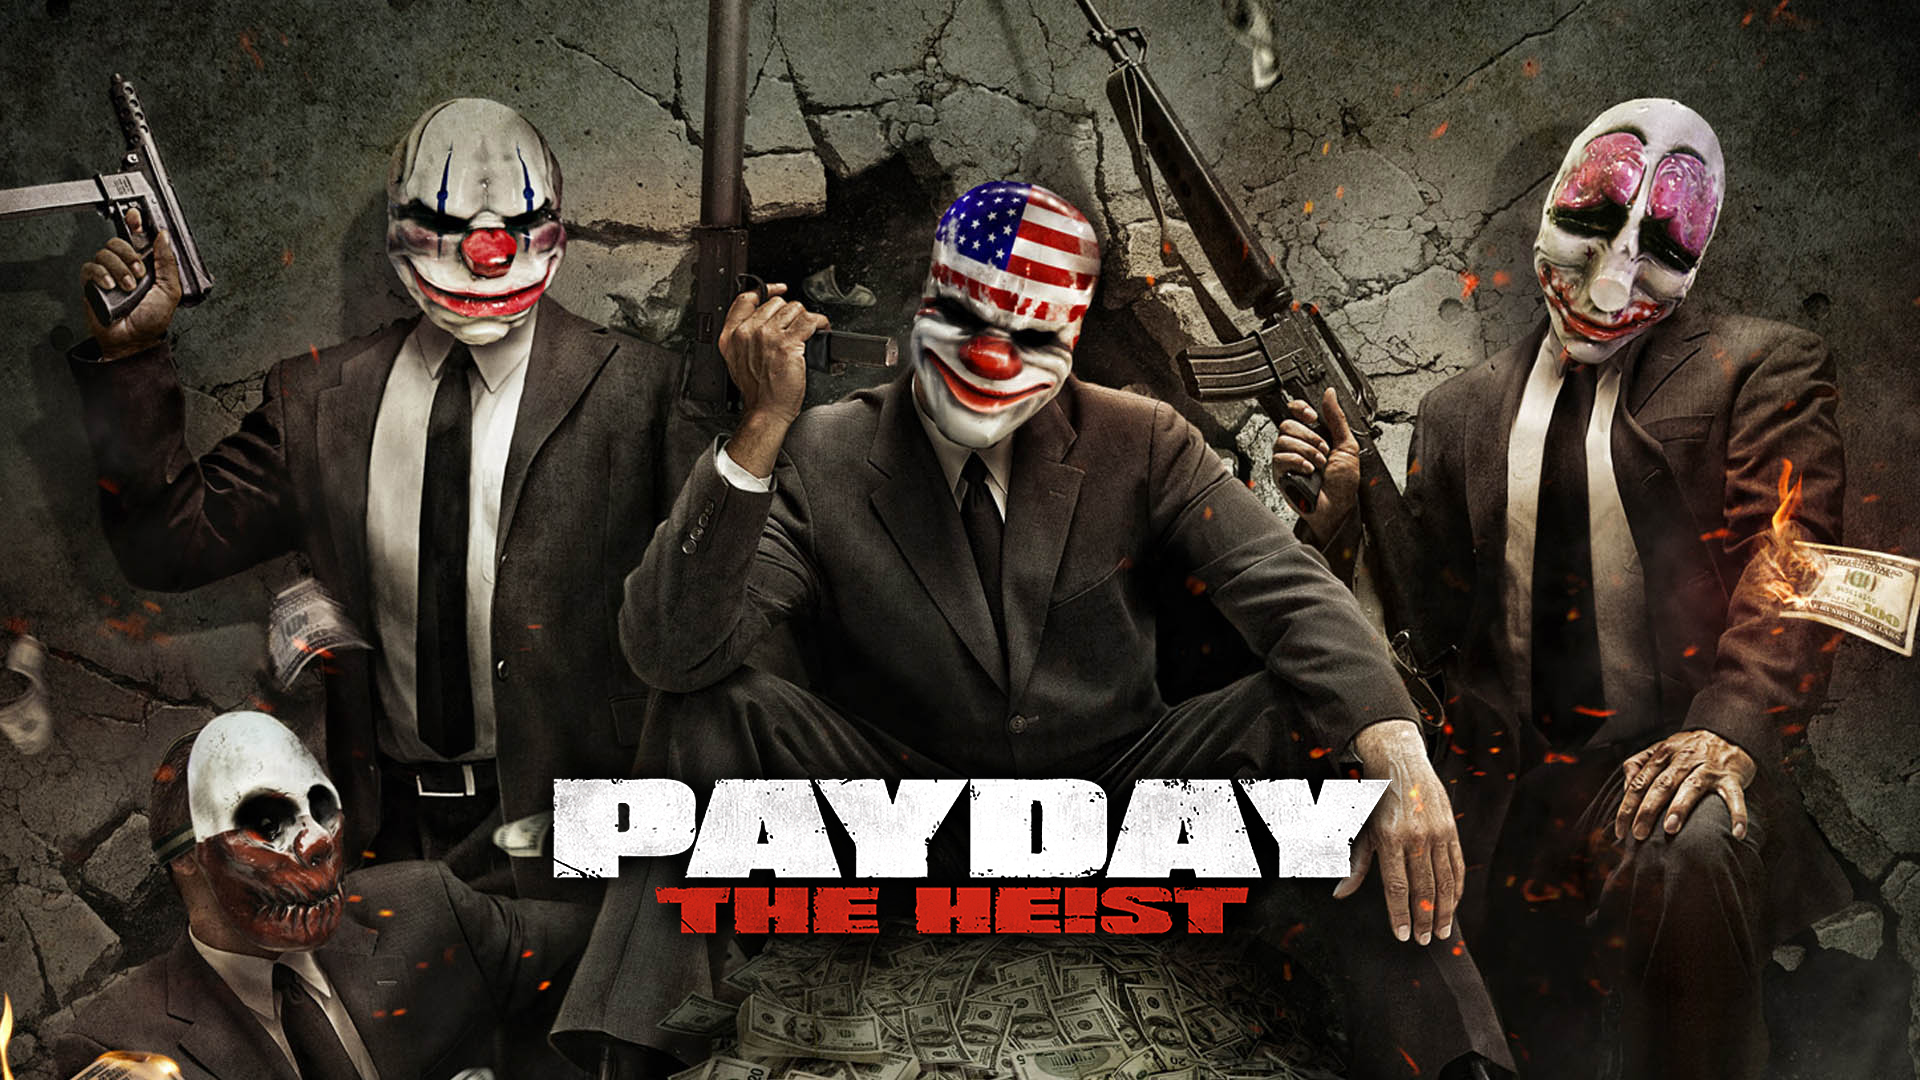 1920x1080 > Payday: The Heist Wallpapers